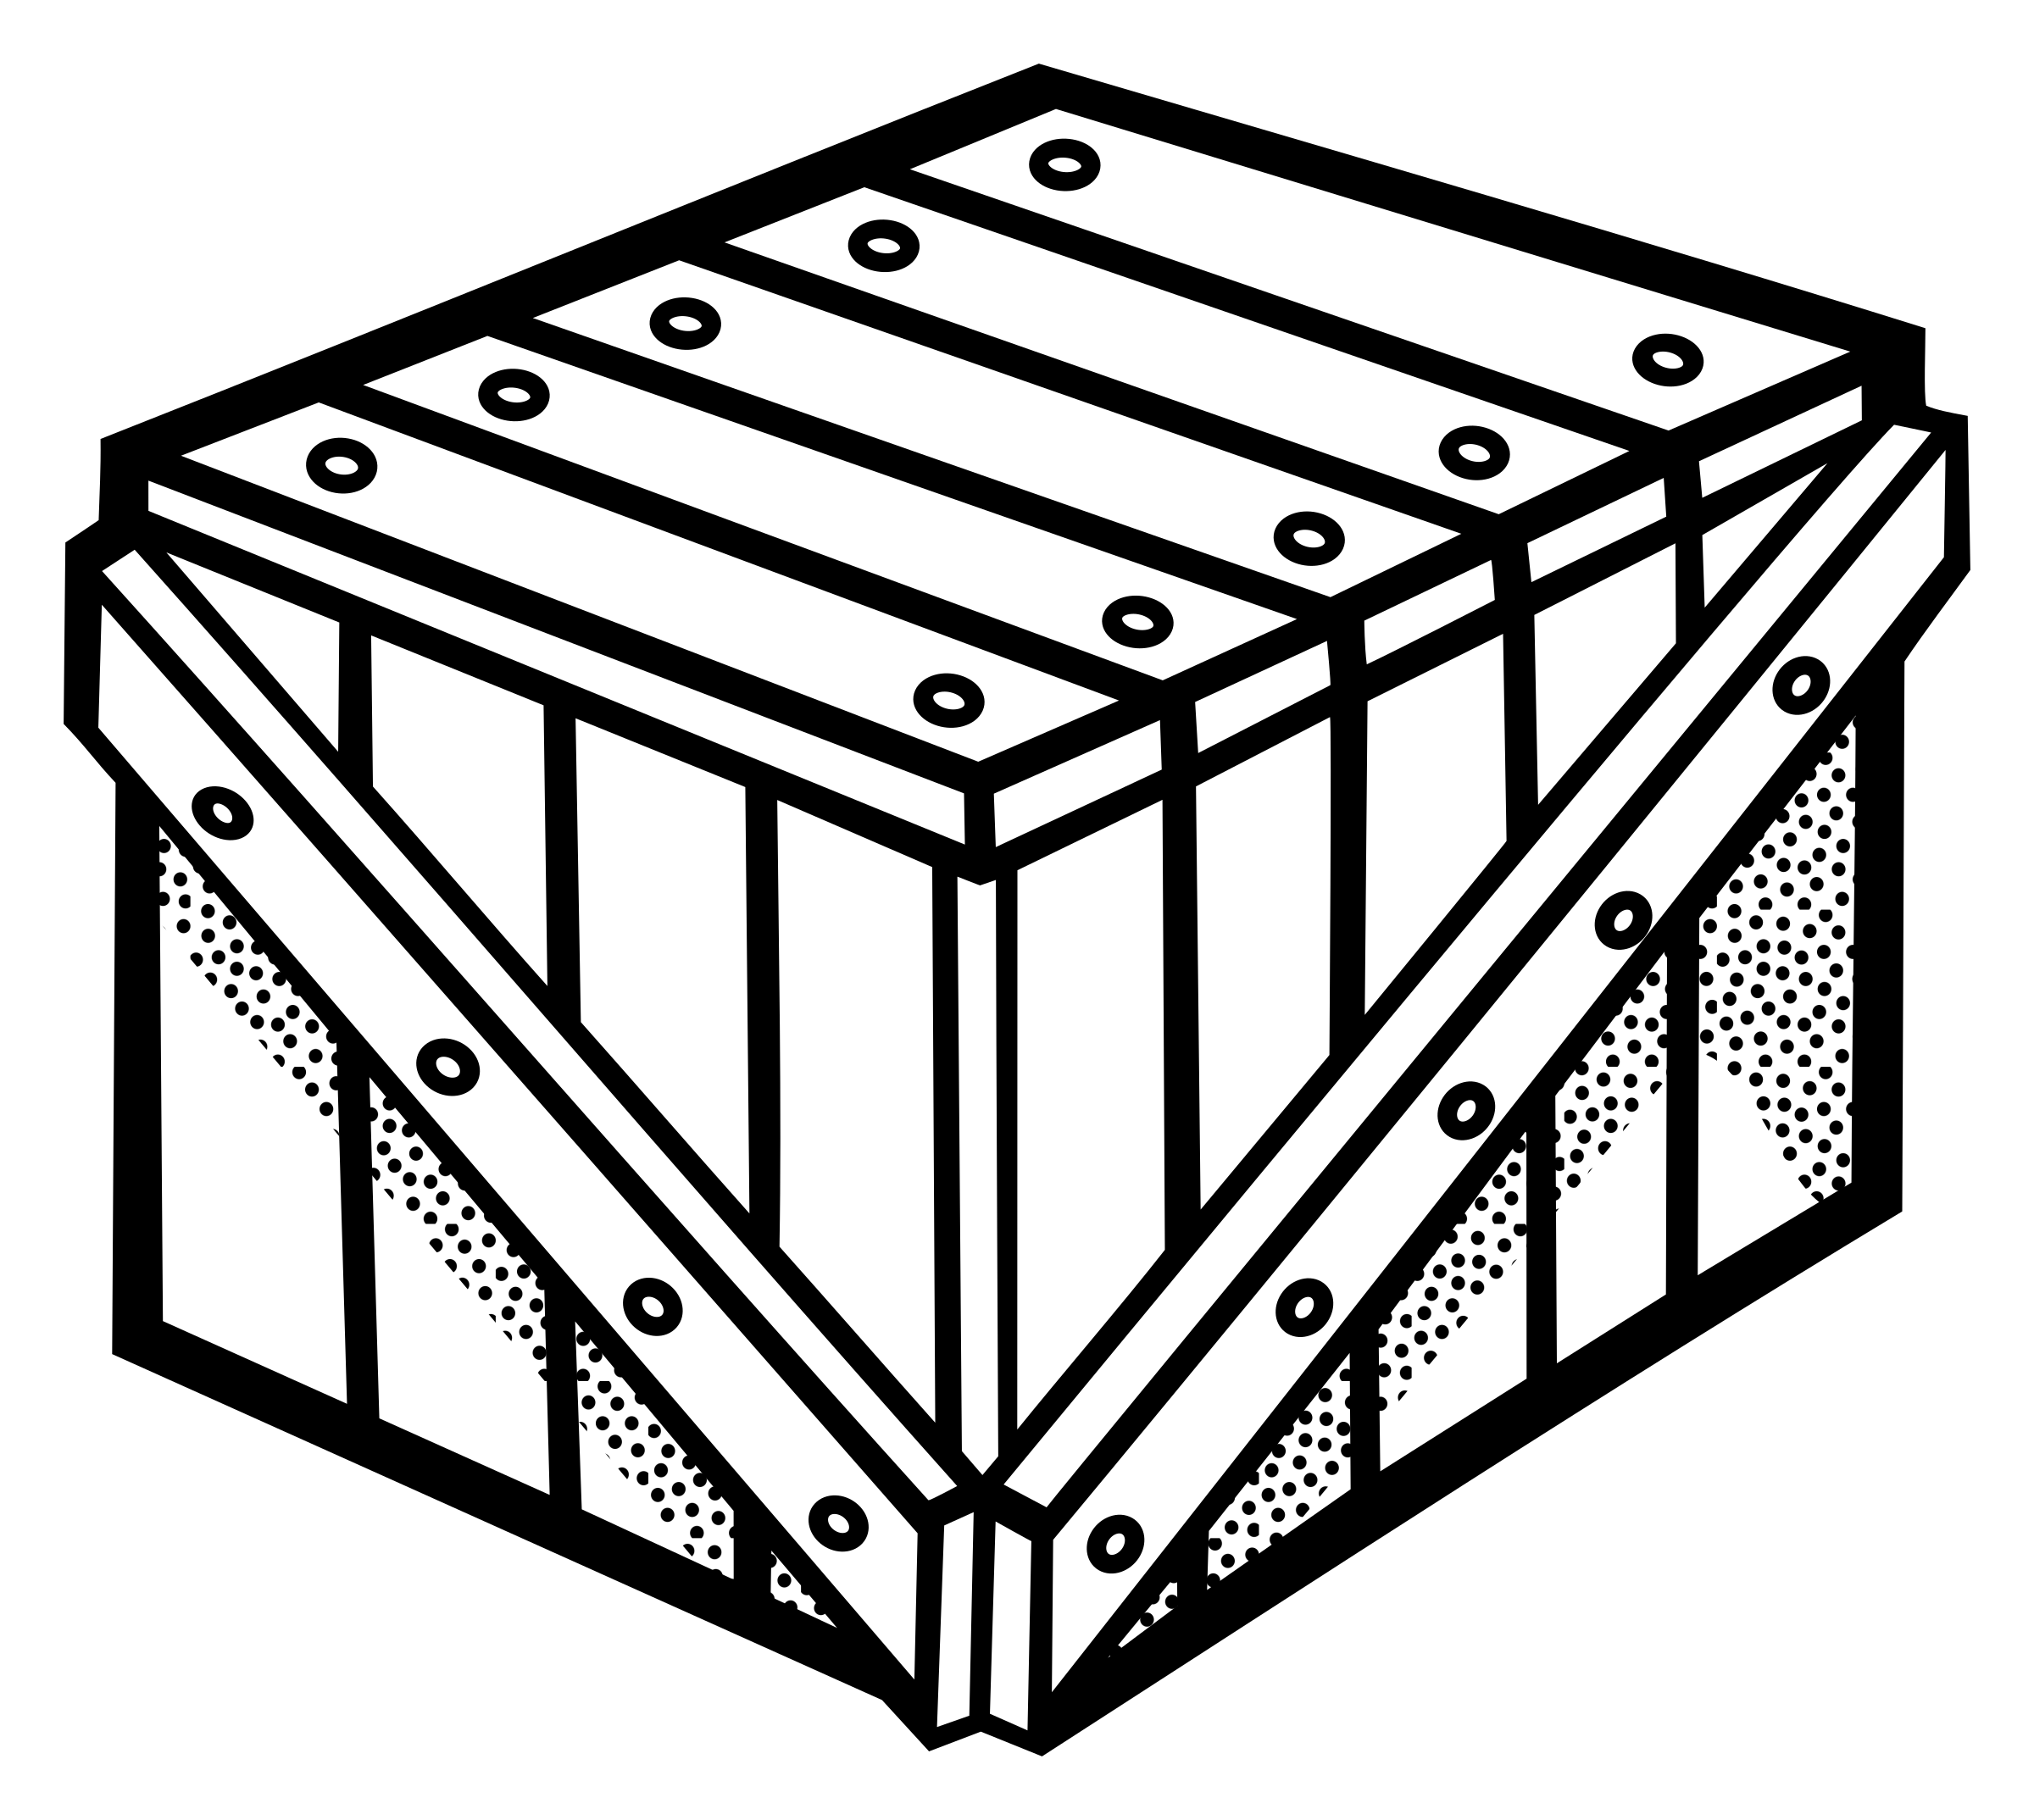 Clipart box crate. Lineart big image png